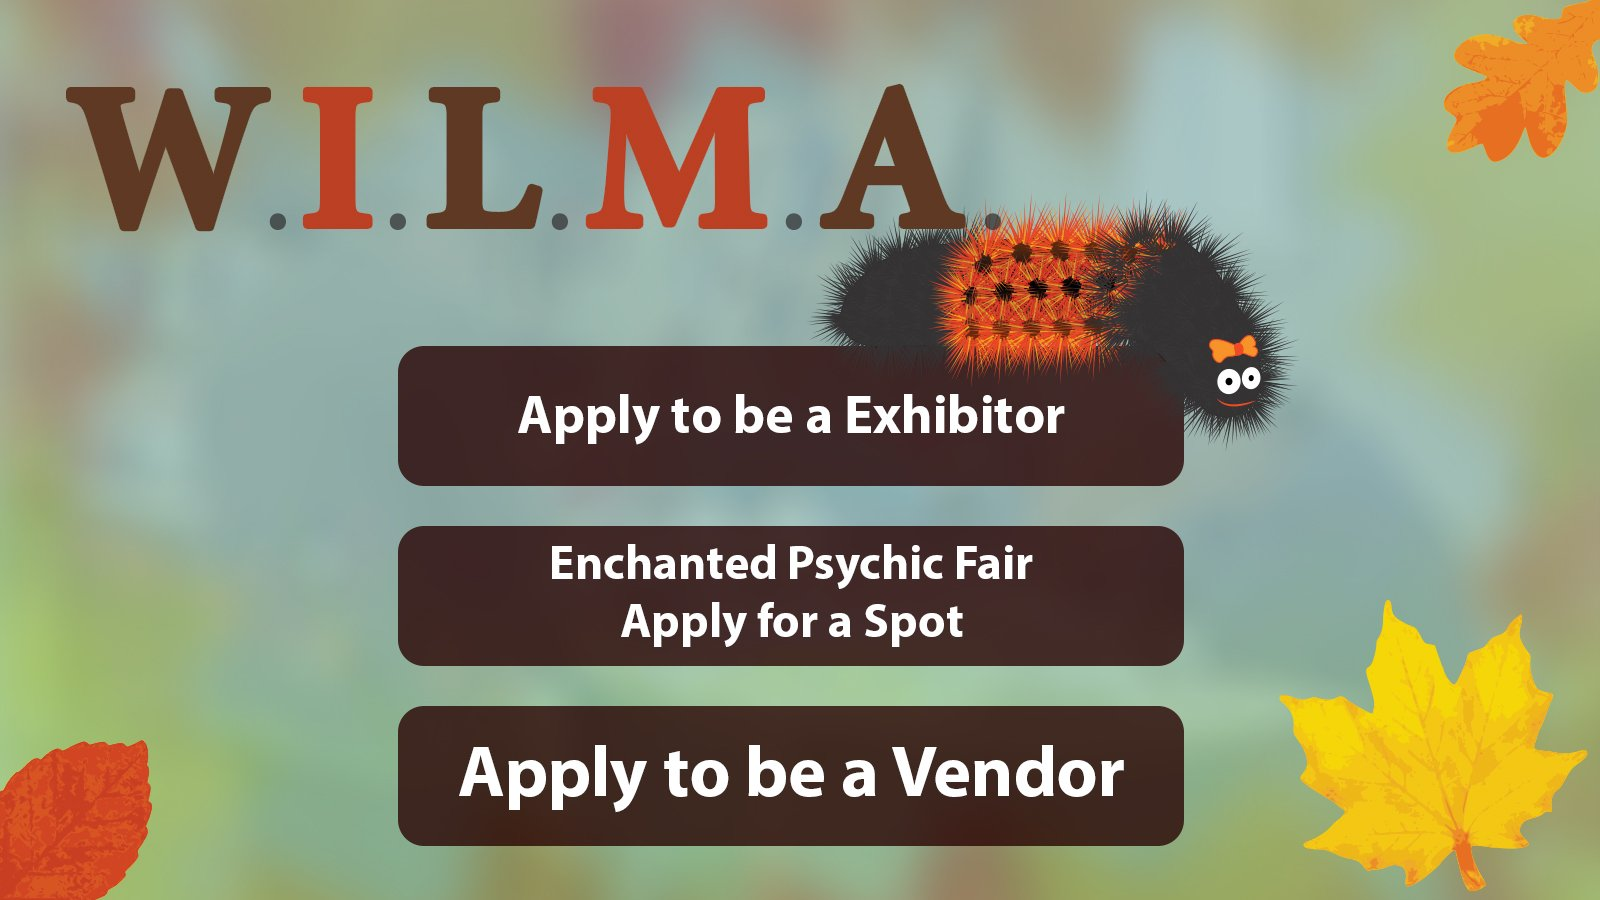 WILMA: Apply to be an exhibitor, Enchanted Psychic Fair, vendor